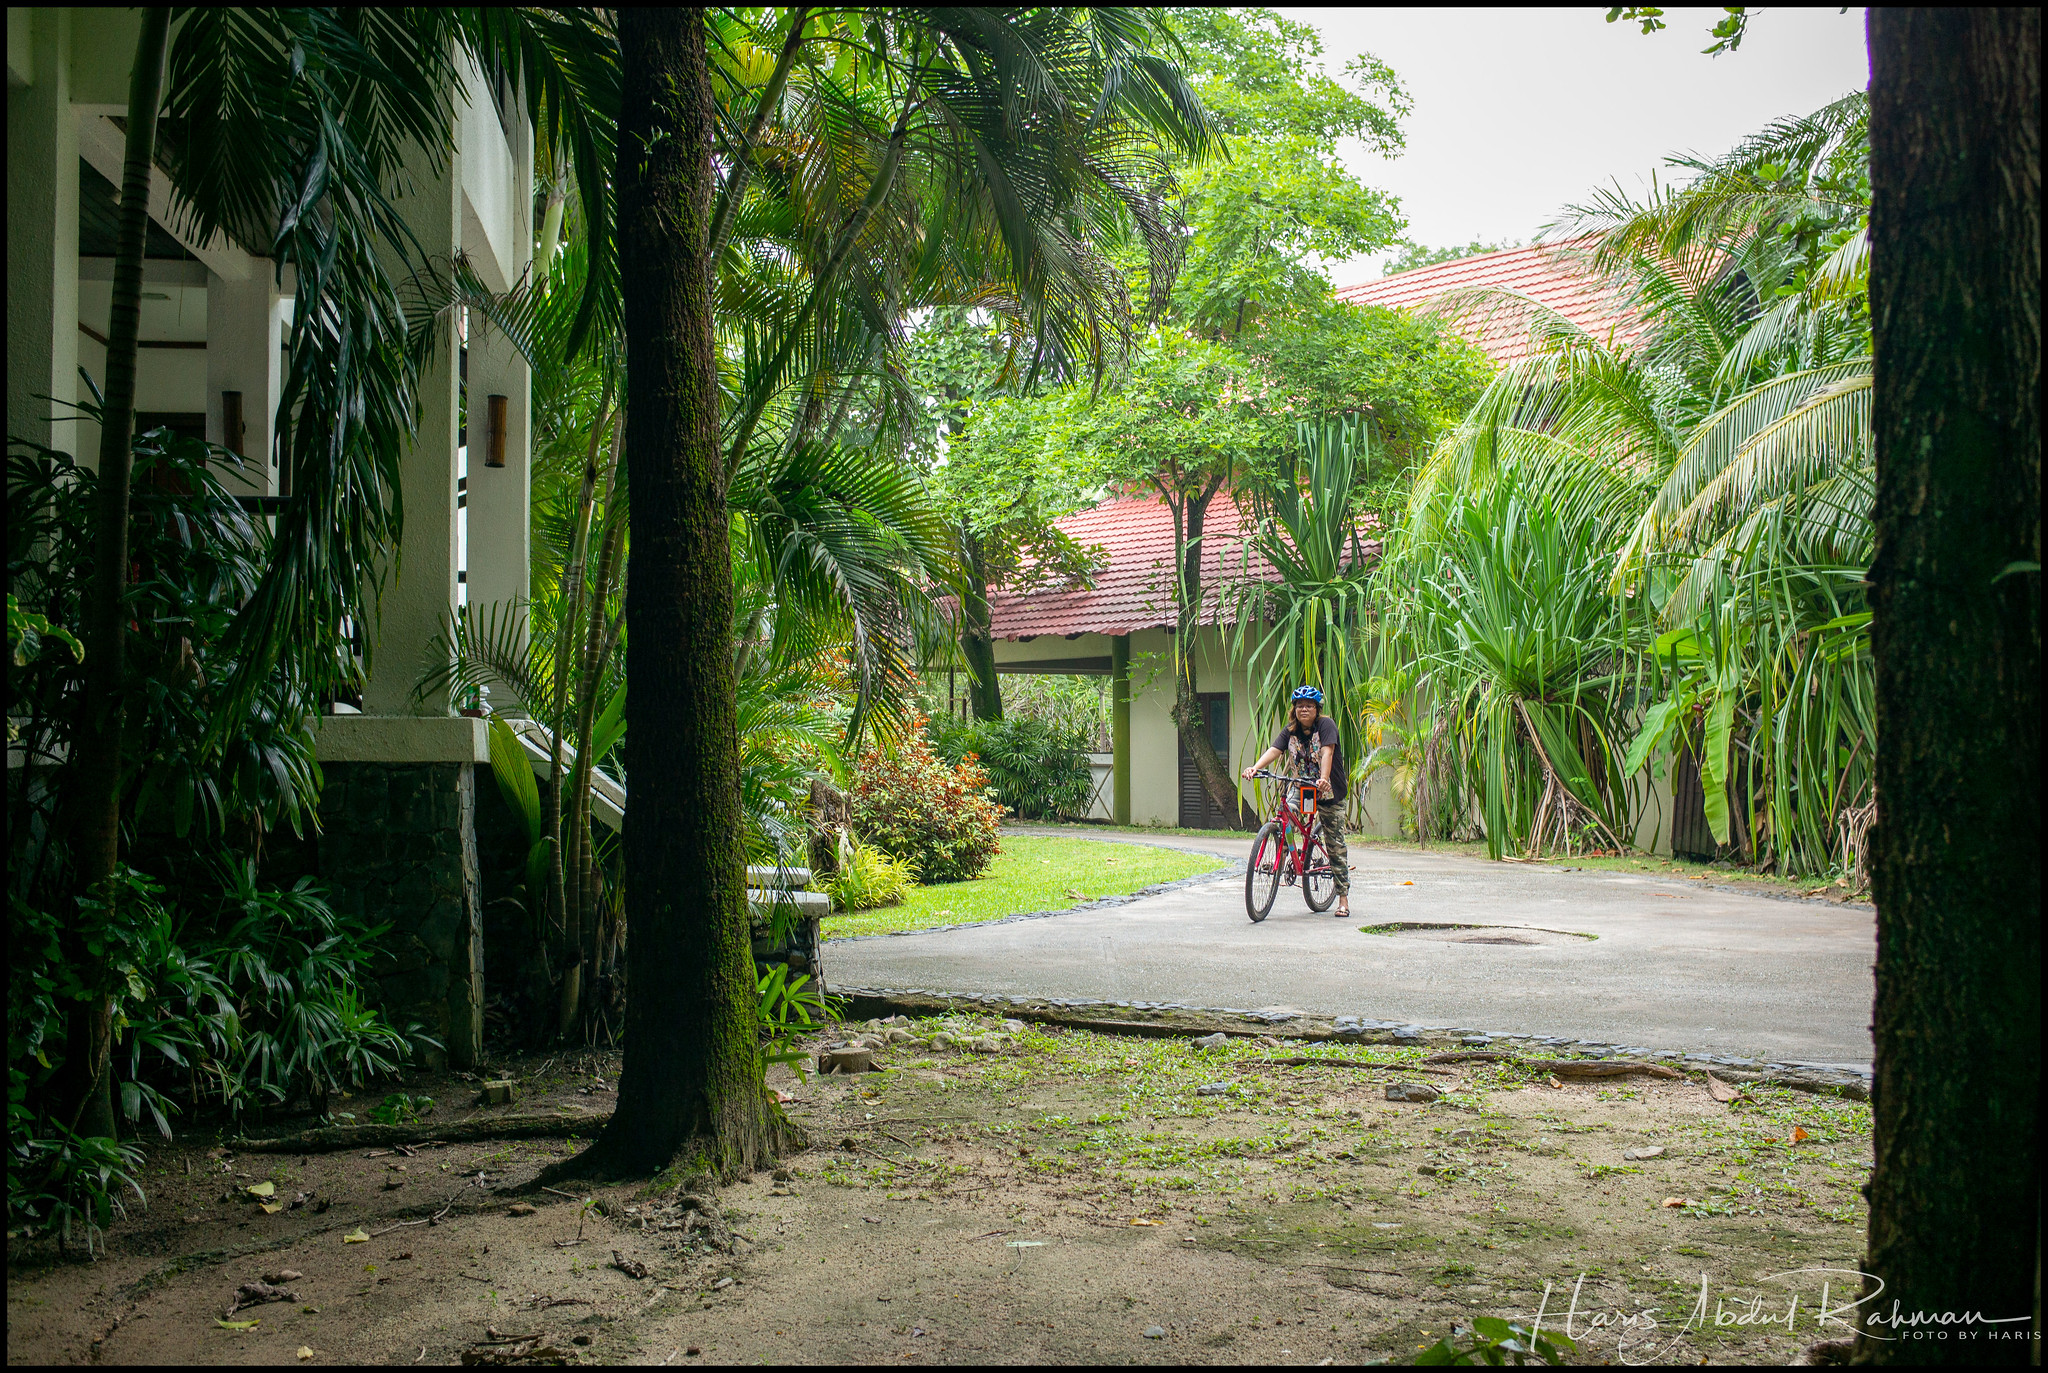 Anita passing by other parts of the resort